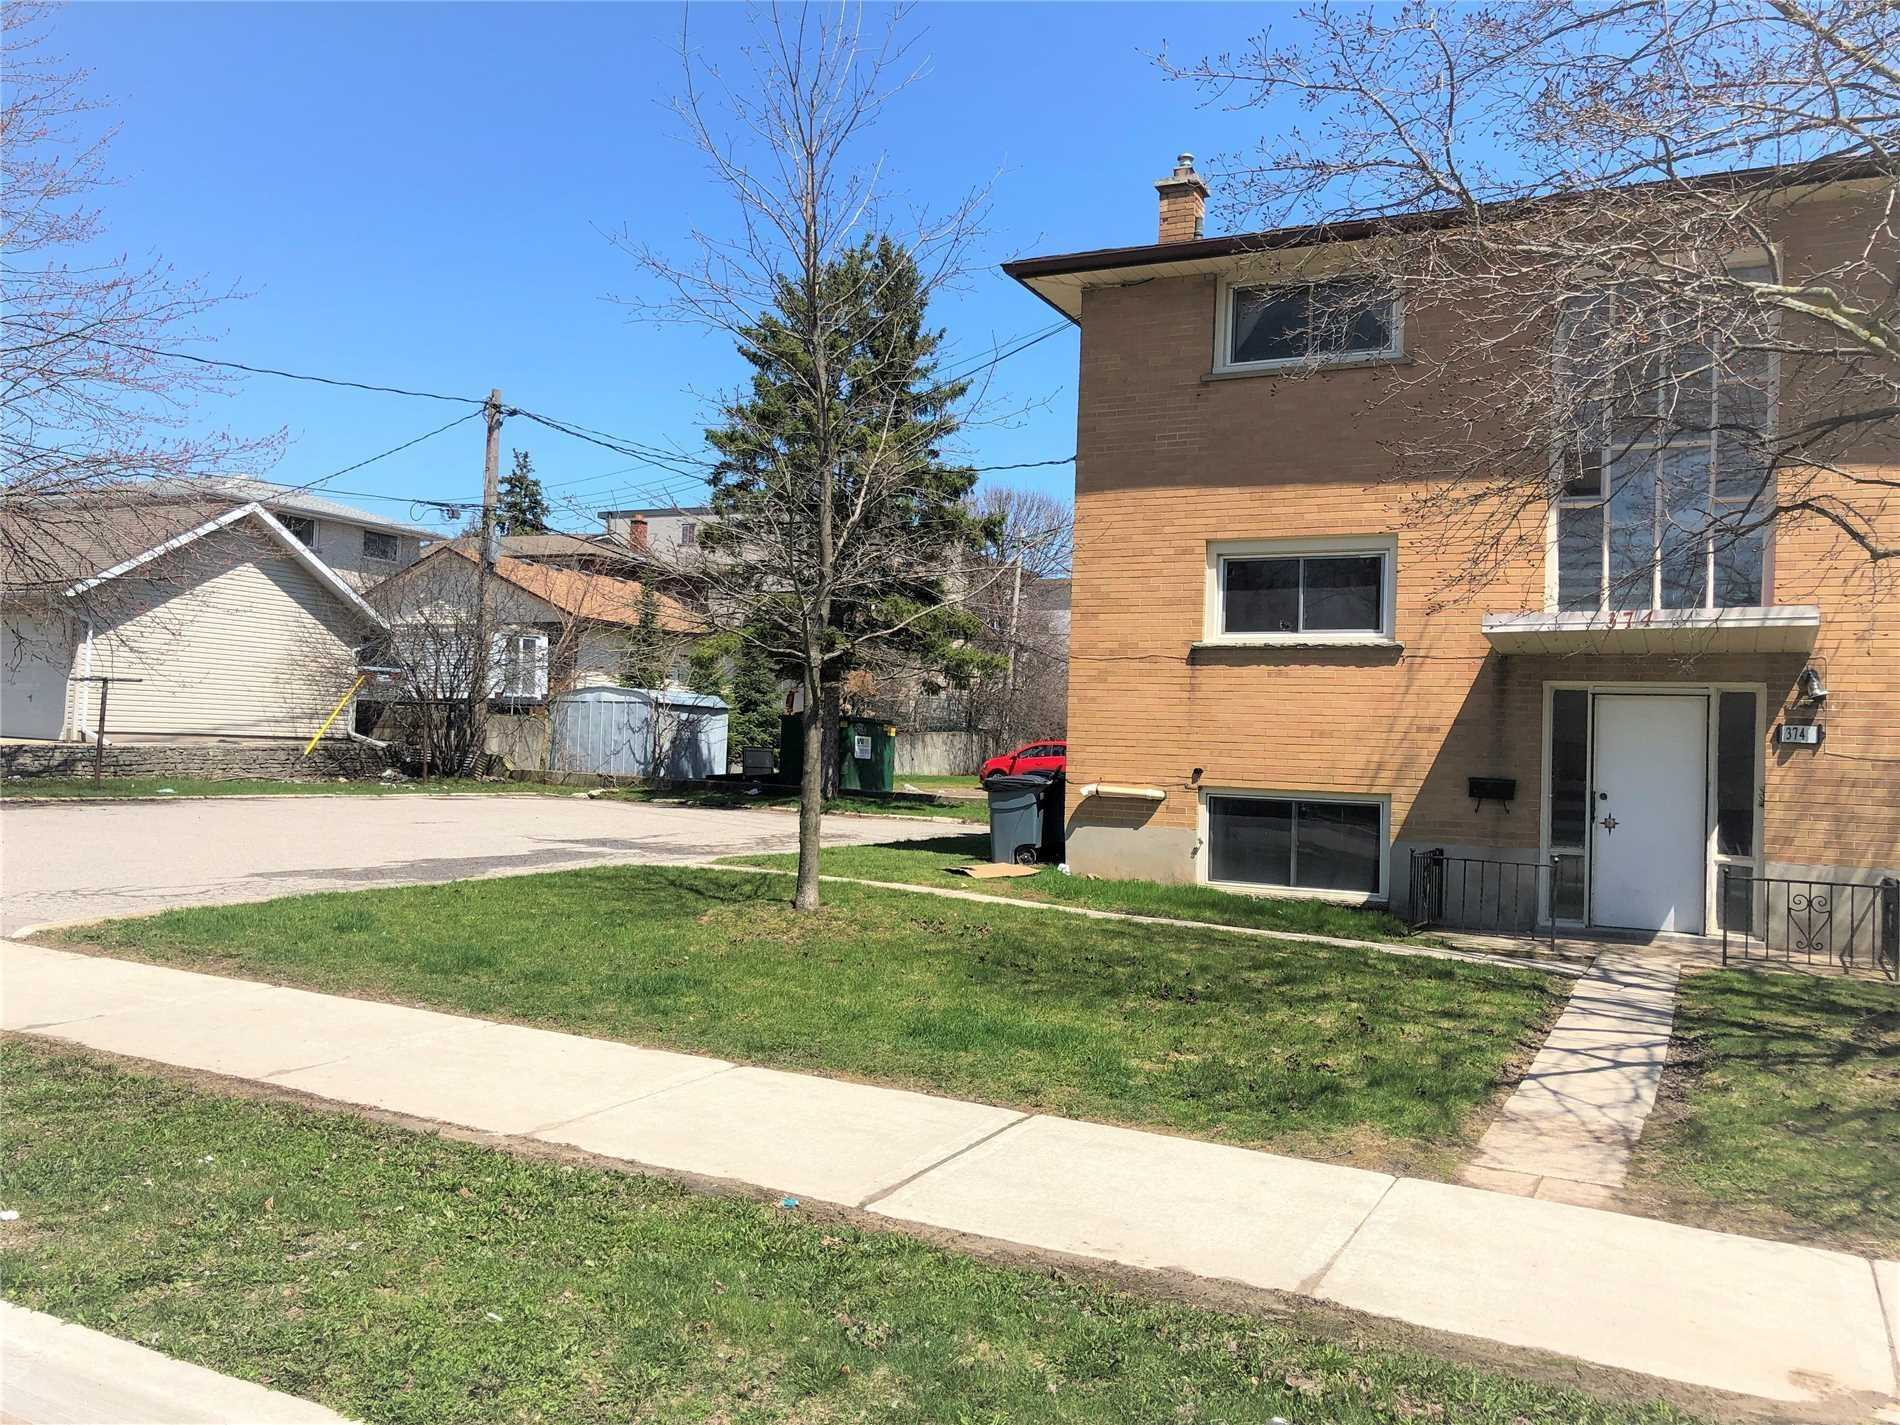 374 Holly St, Waterloo, Ontario N2L4G4, ,3 BathroomsBathrooms,Investment,For Sale,Holly,X4828925